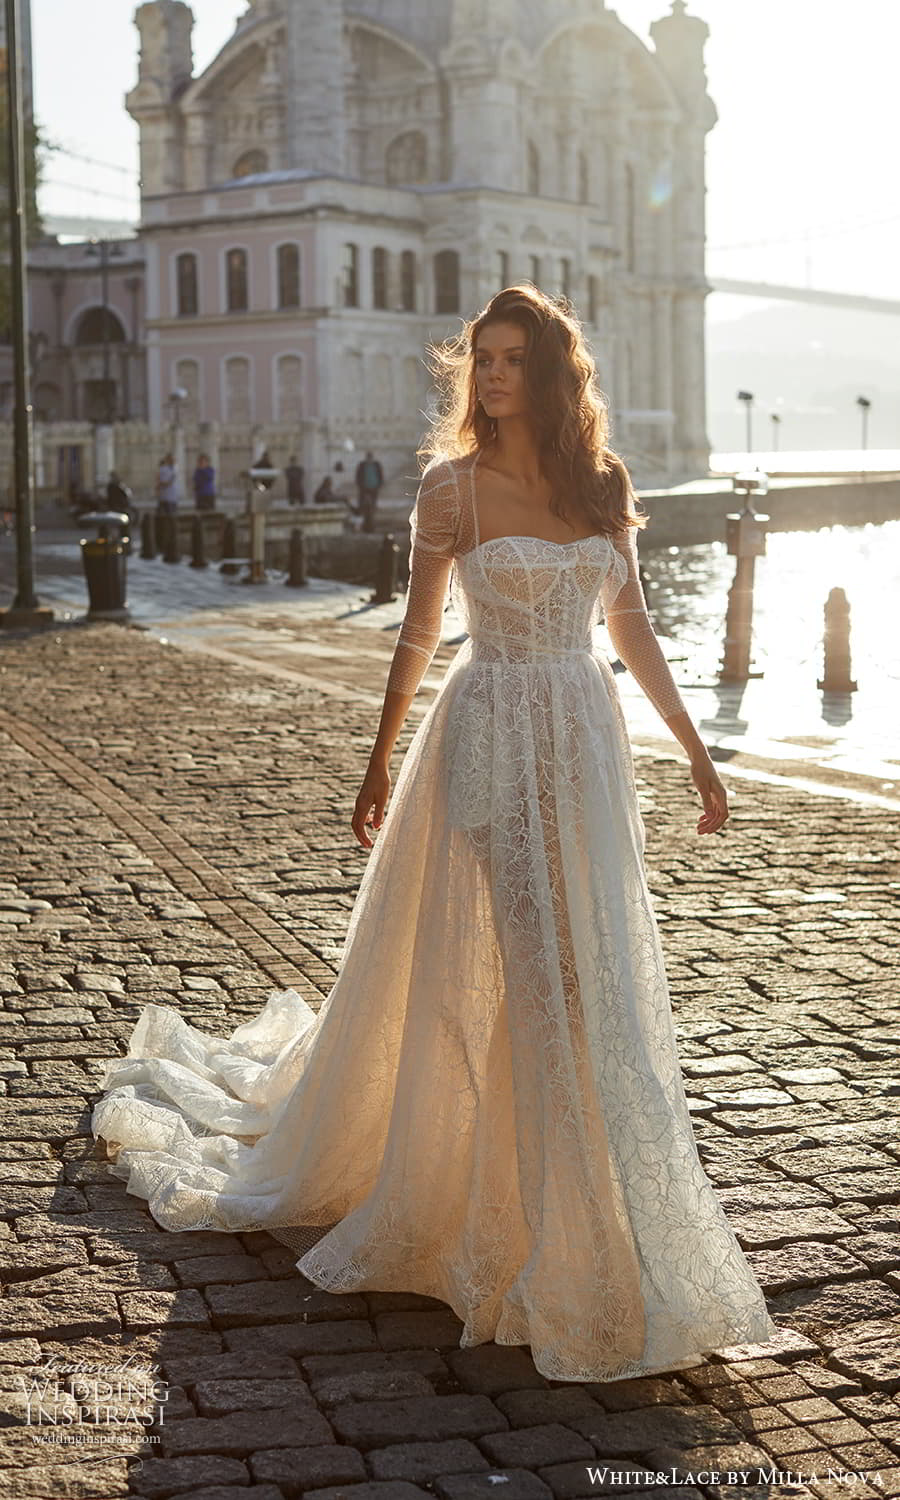 white lace milla nova 2022 bridal strapless sweetheart fully embellished a line ball gown wedding dress chapel train sheer puff sleeve jacket (6) m